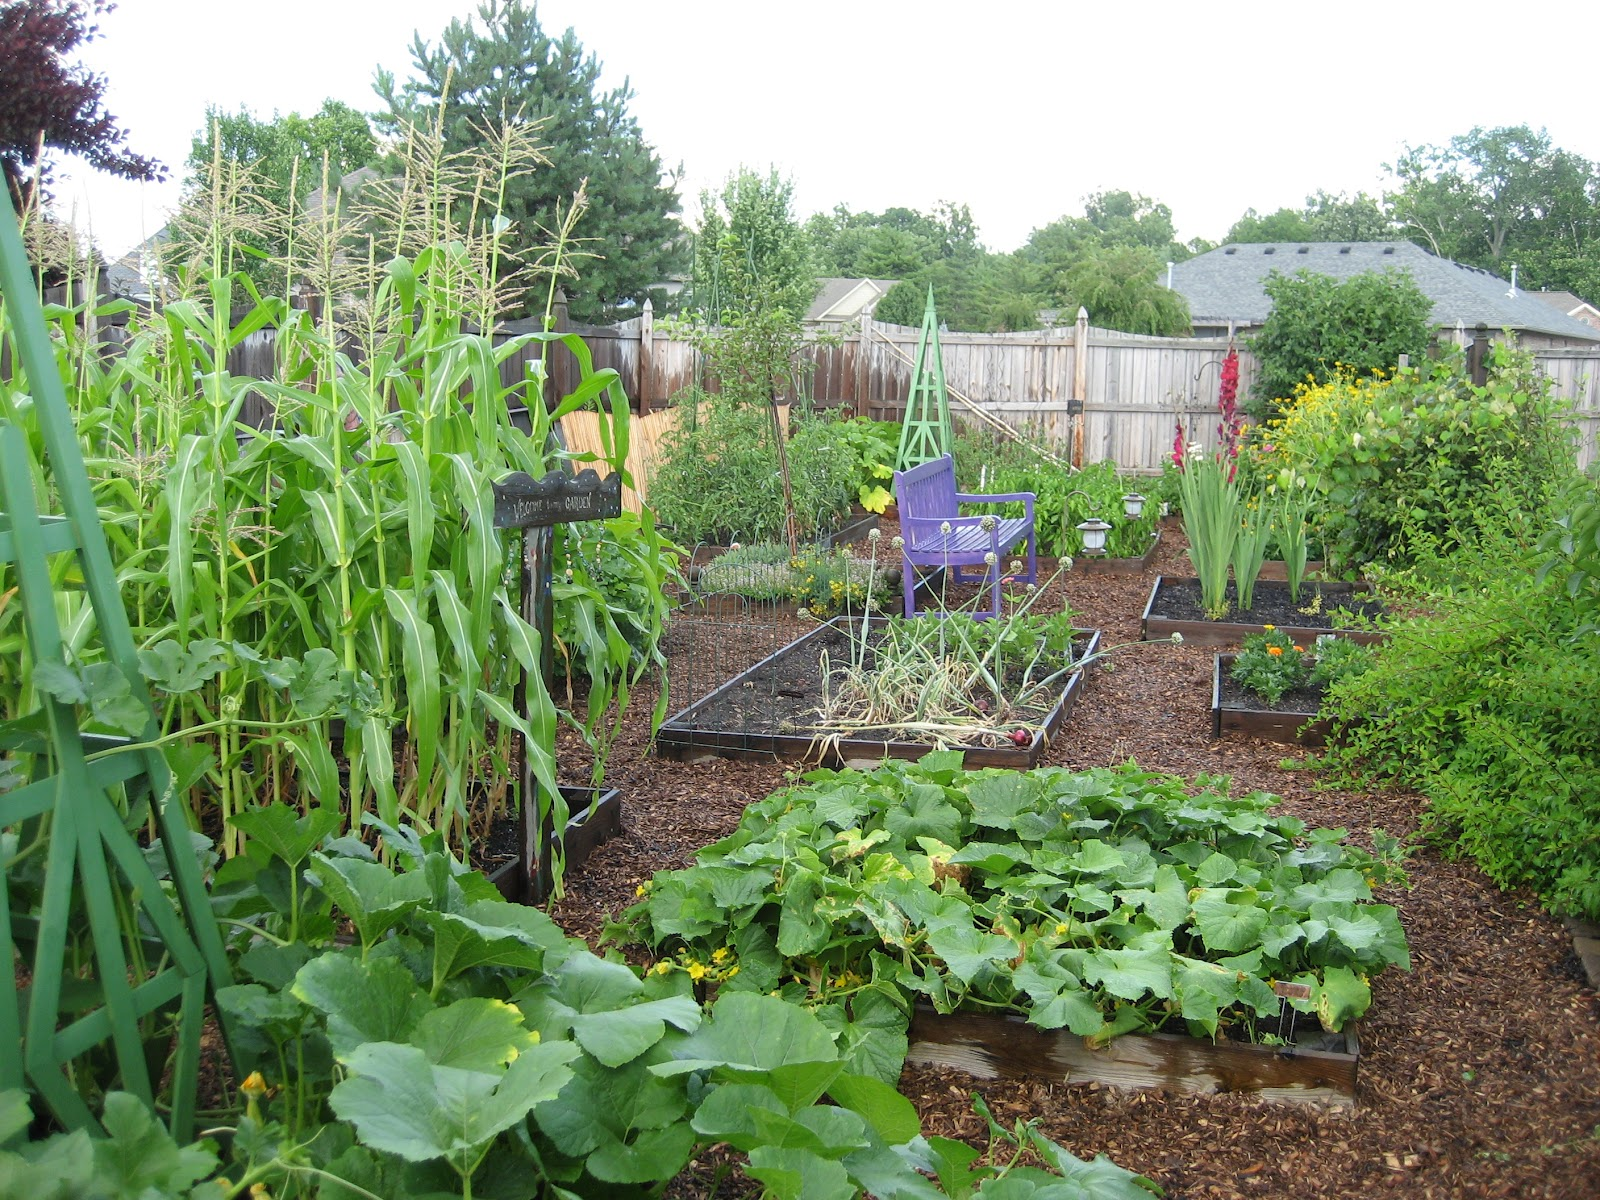 My vegetable garden at its peak a few years ago